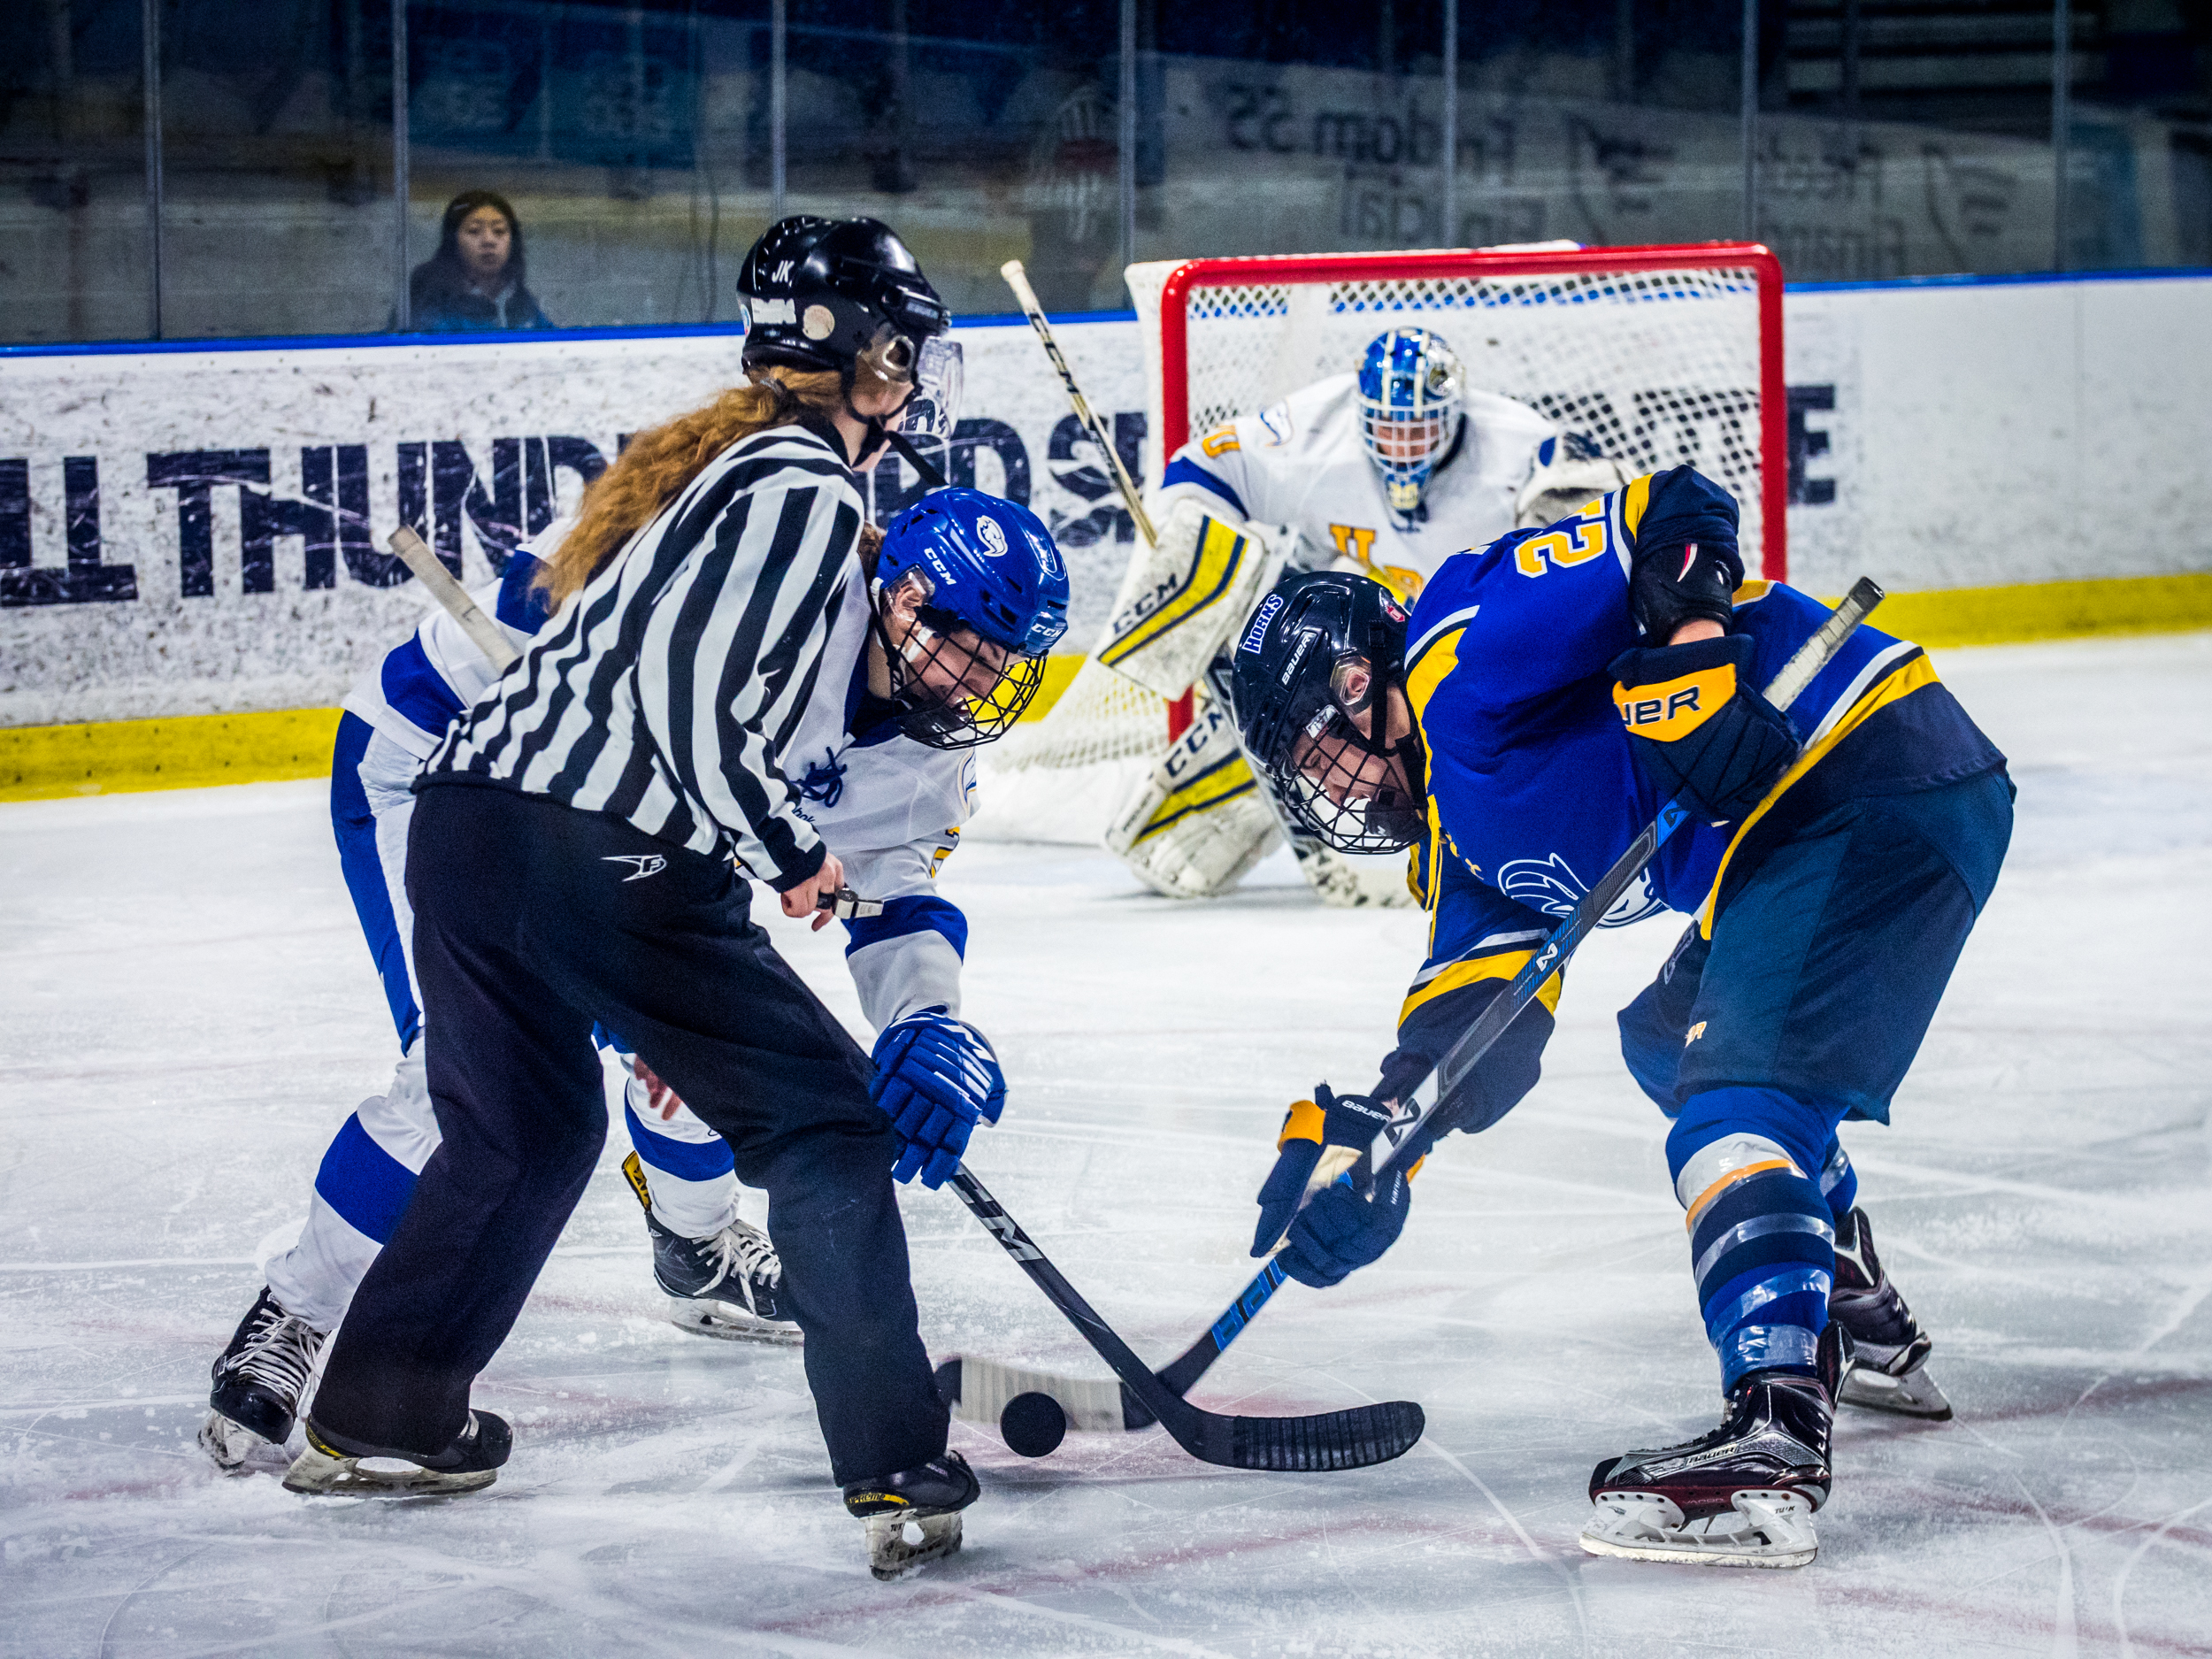 UBC and Lethbridge face off inside the Thunderbirds' blue line.